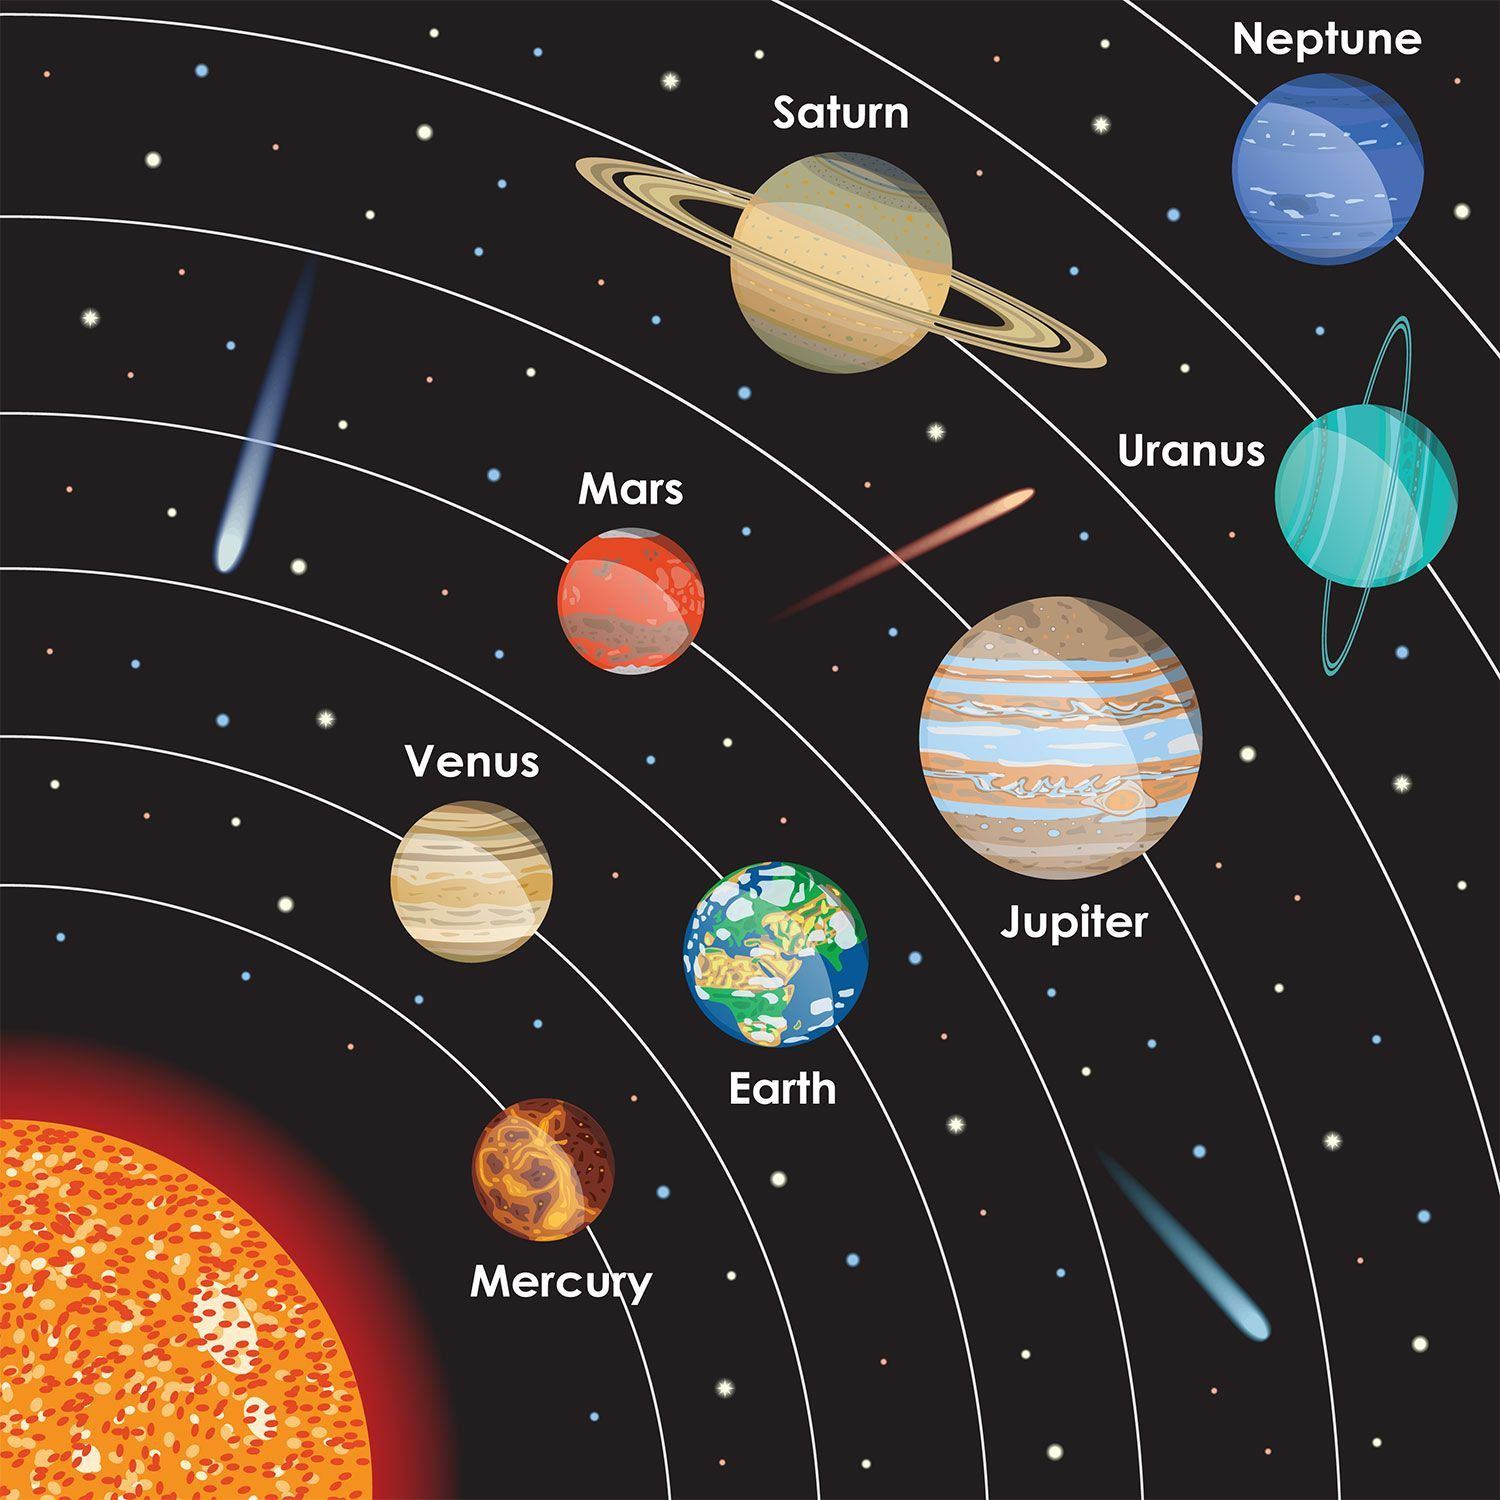 Pictures Of Planets In Order Unique Order Planet Names